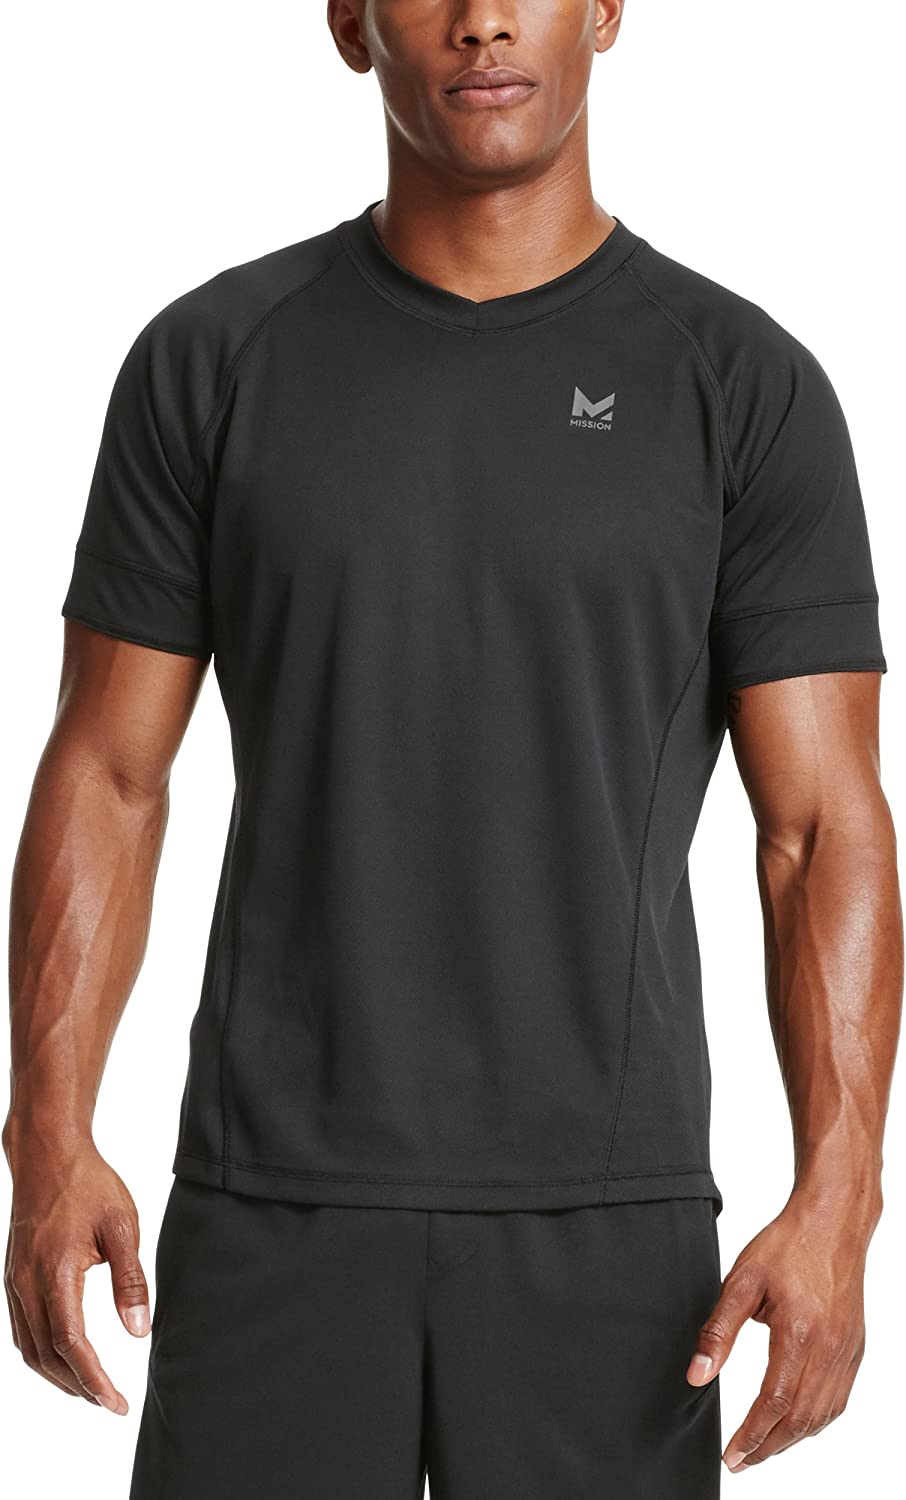 Mission Men's VaporActive Proton Short Sleeve Running T-Shirt